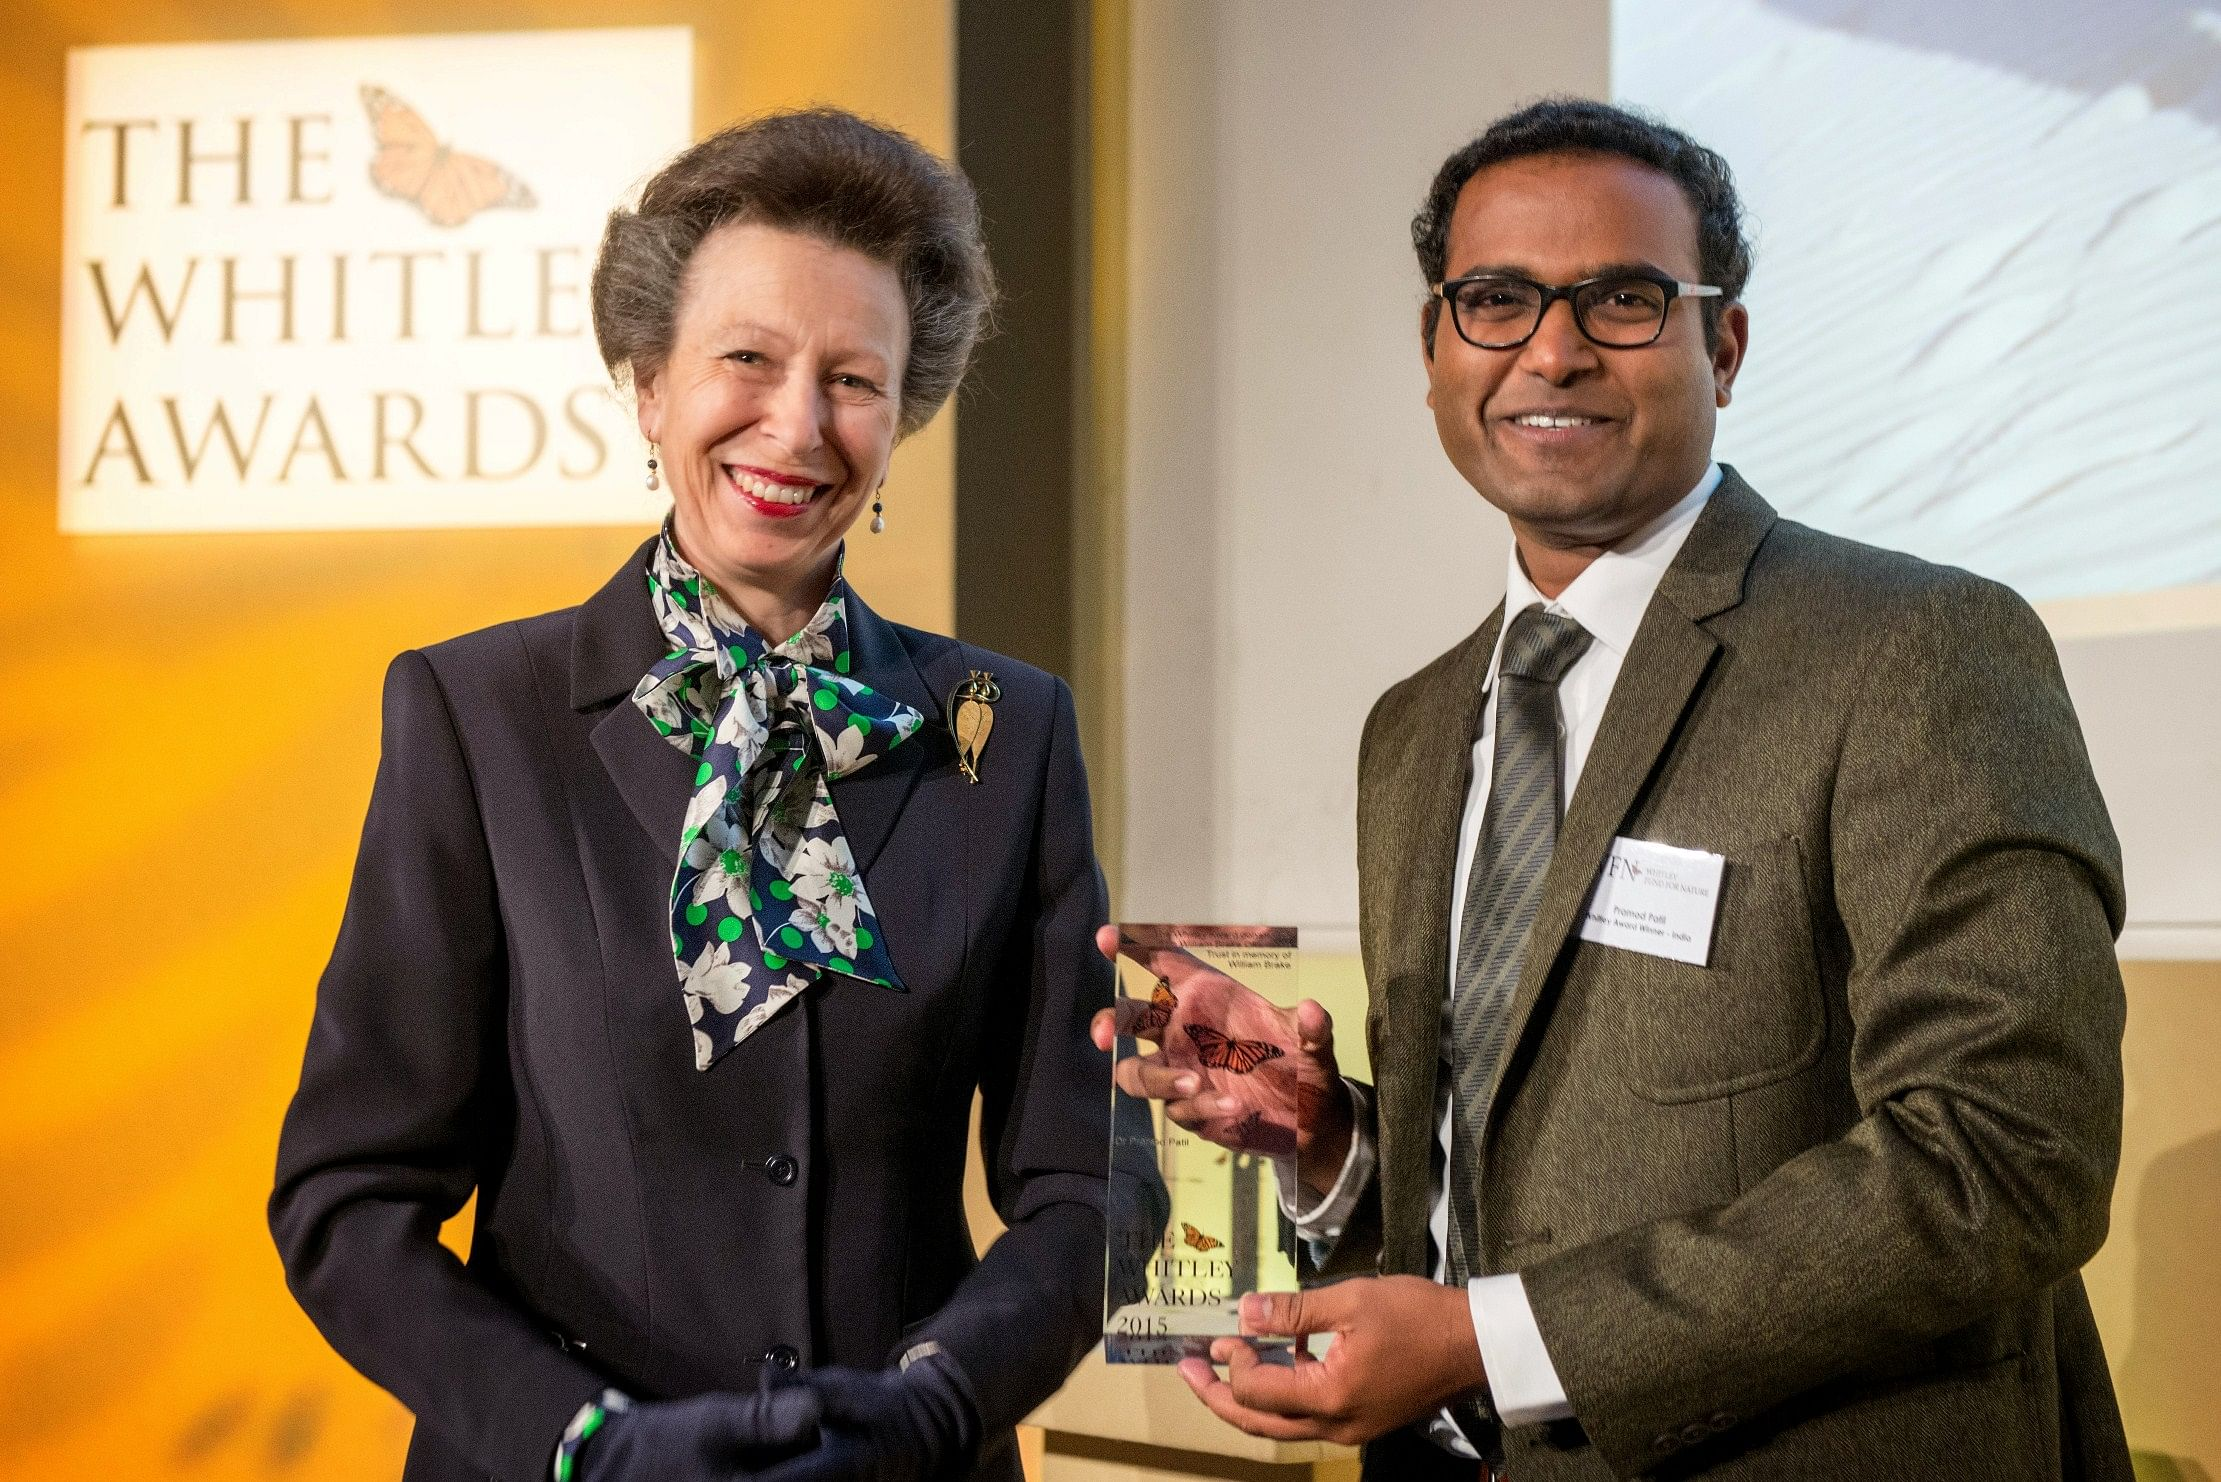 Dr. Pramod Patil receiving the Whitley Award from Princess Anne at a ceremony in London